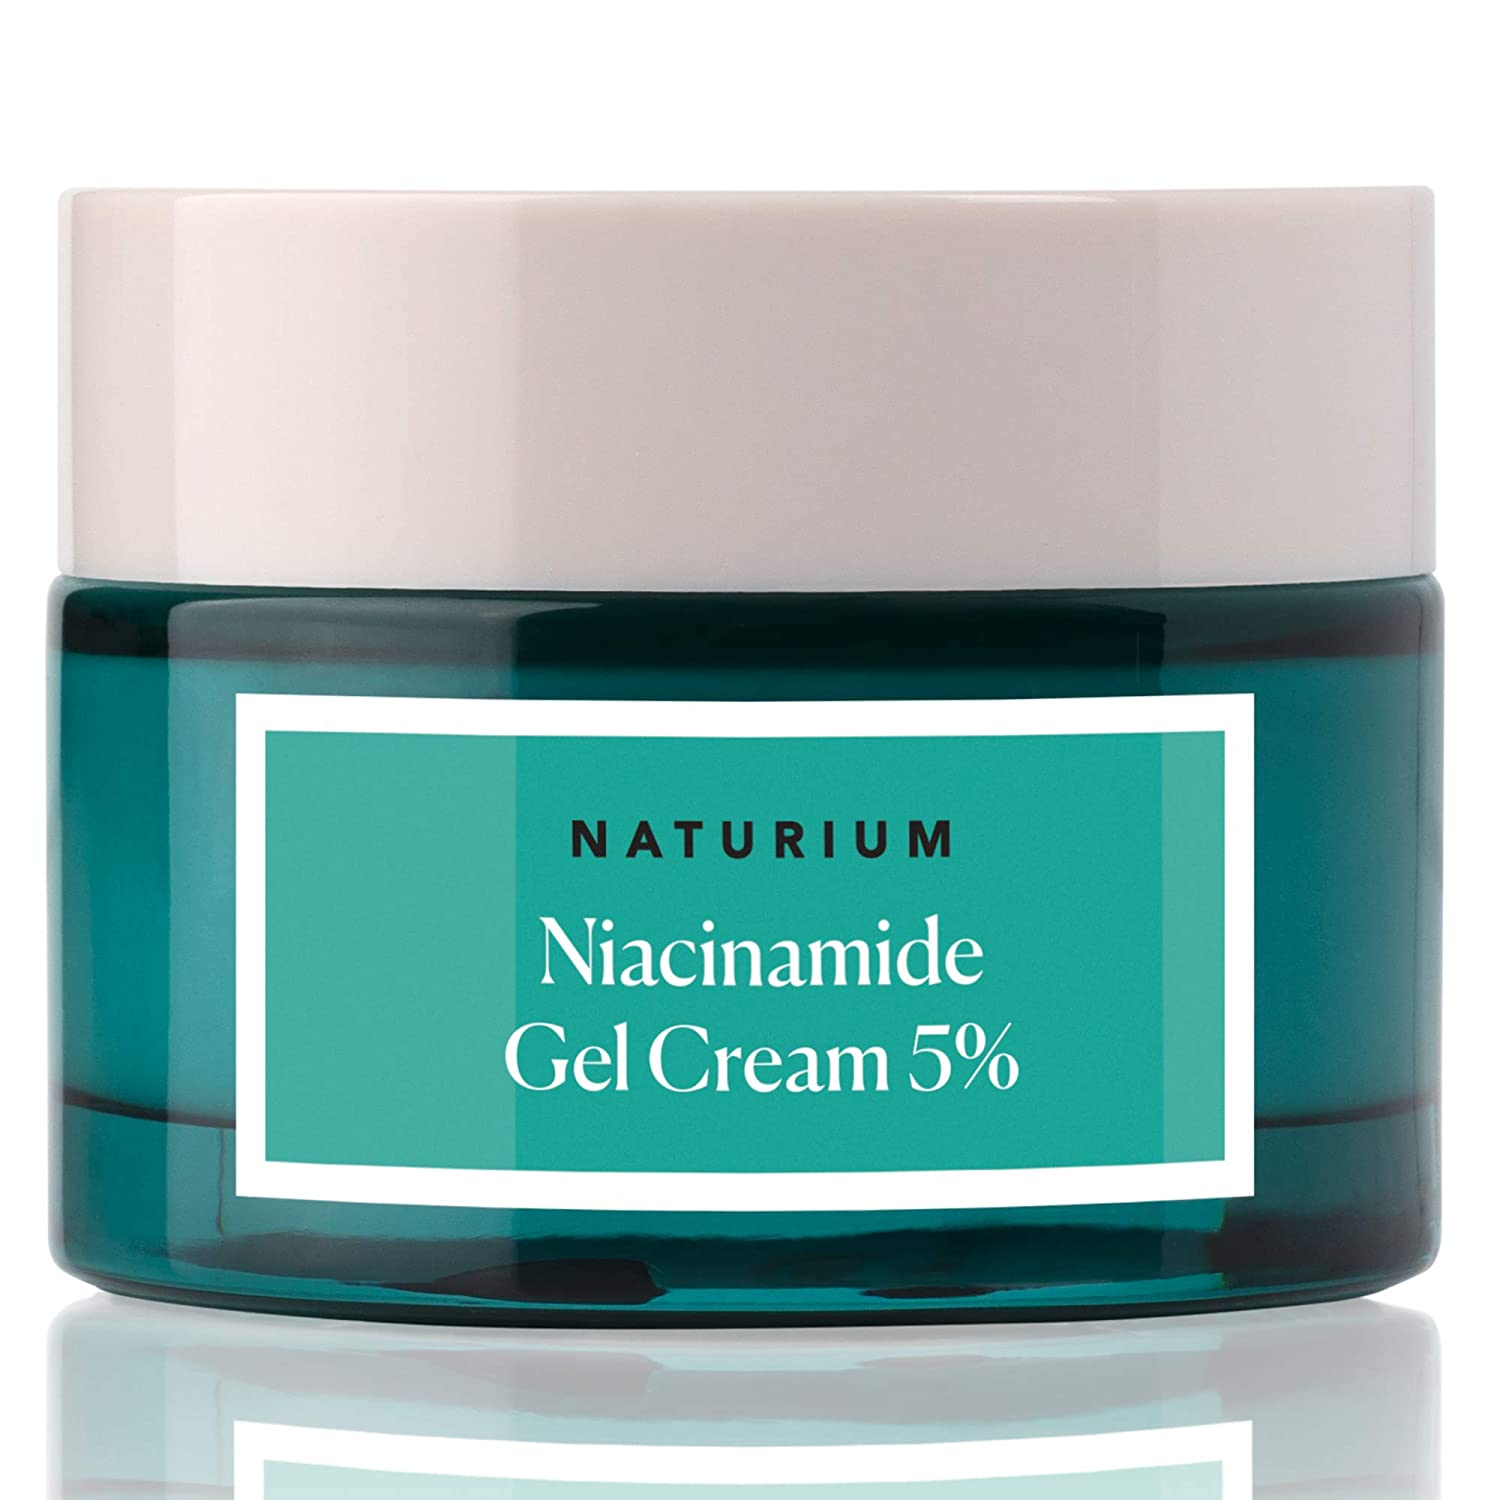 Niacinamide Gel Cream 5% - 1.7oz, Vitamin B3, Minimize Pores, Deep Hydration, Anti Aging Facial Cream with Niacinamide and Coconut by Naturium